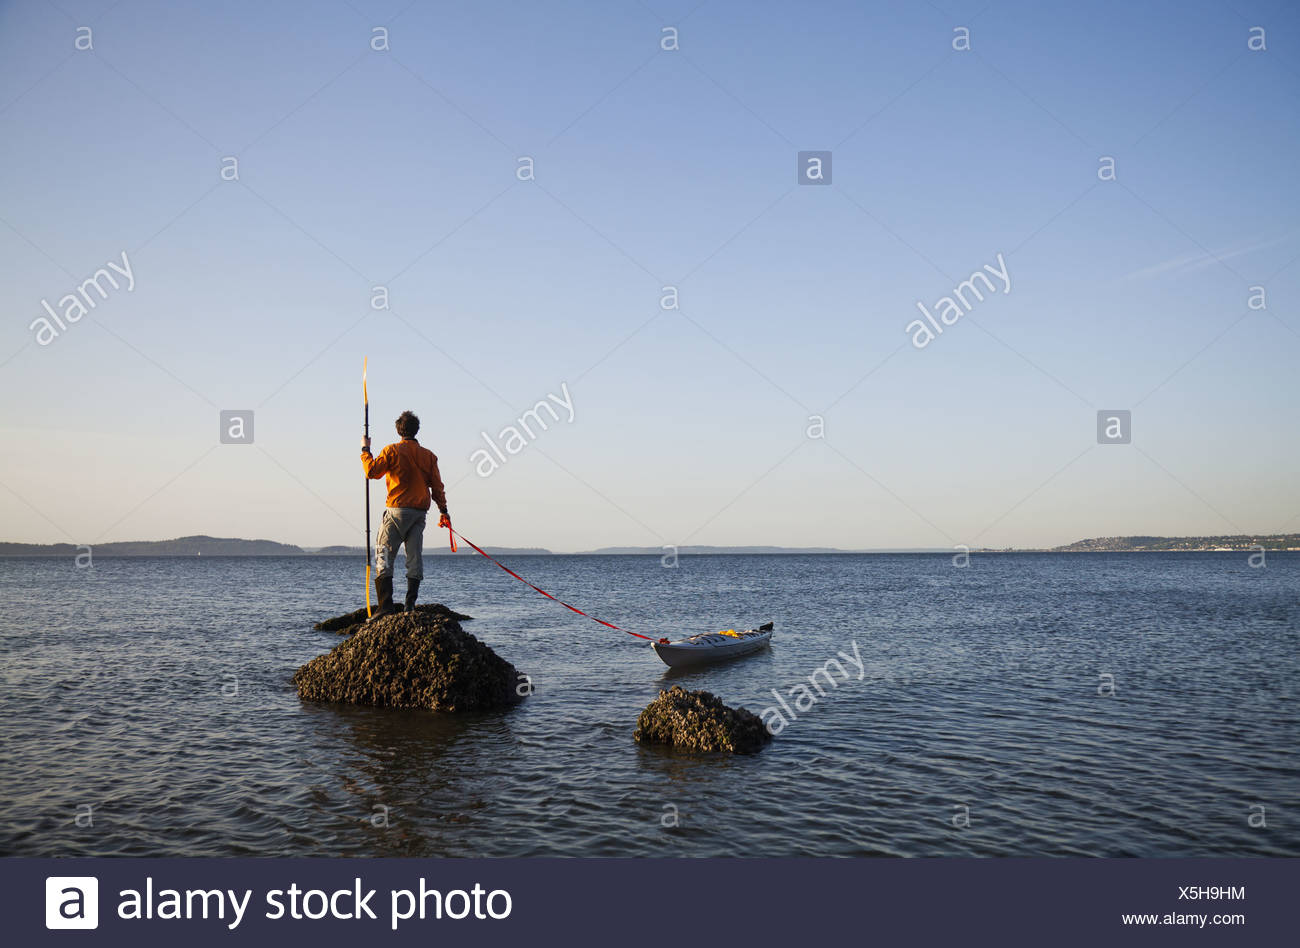 Seattle Washington USA sea kayaker stands on rock in the water at sunset - Stock Image